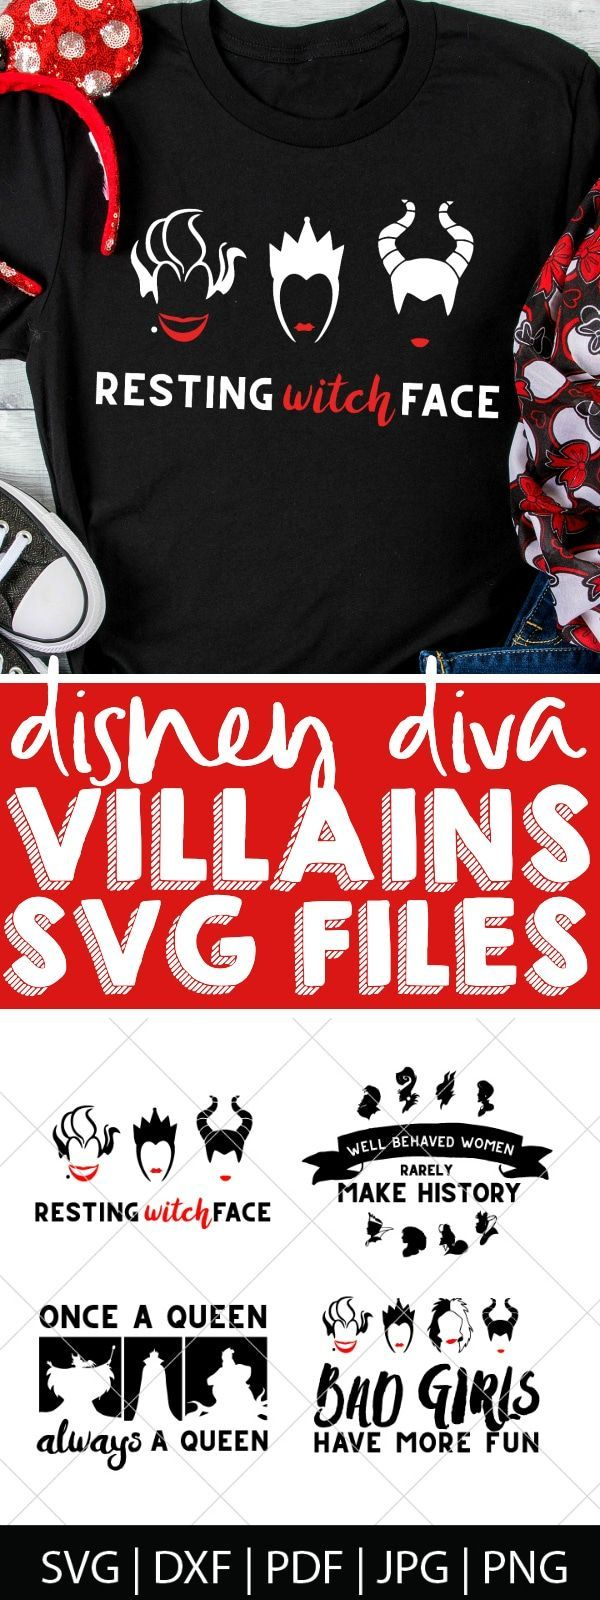 Disney Villains SVG Files Disney villains, Disney